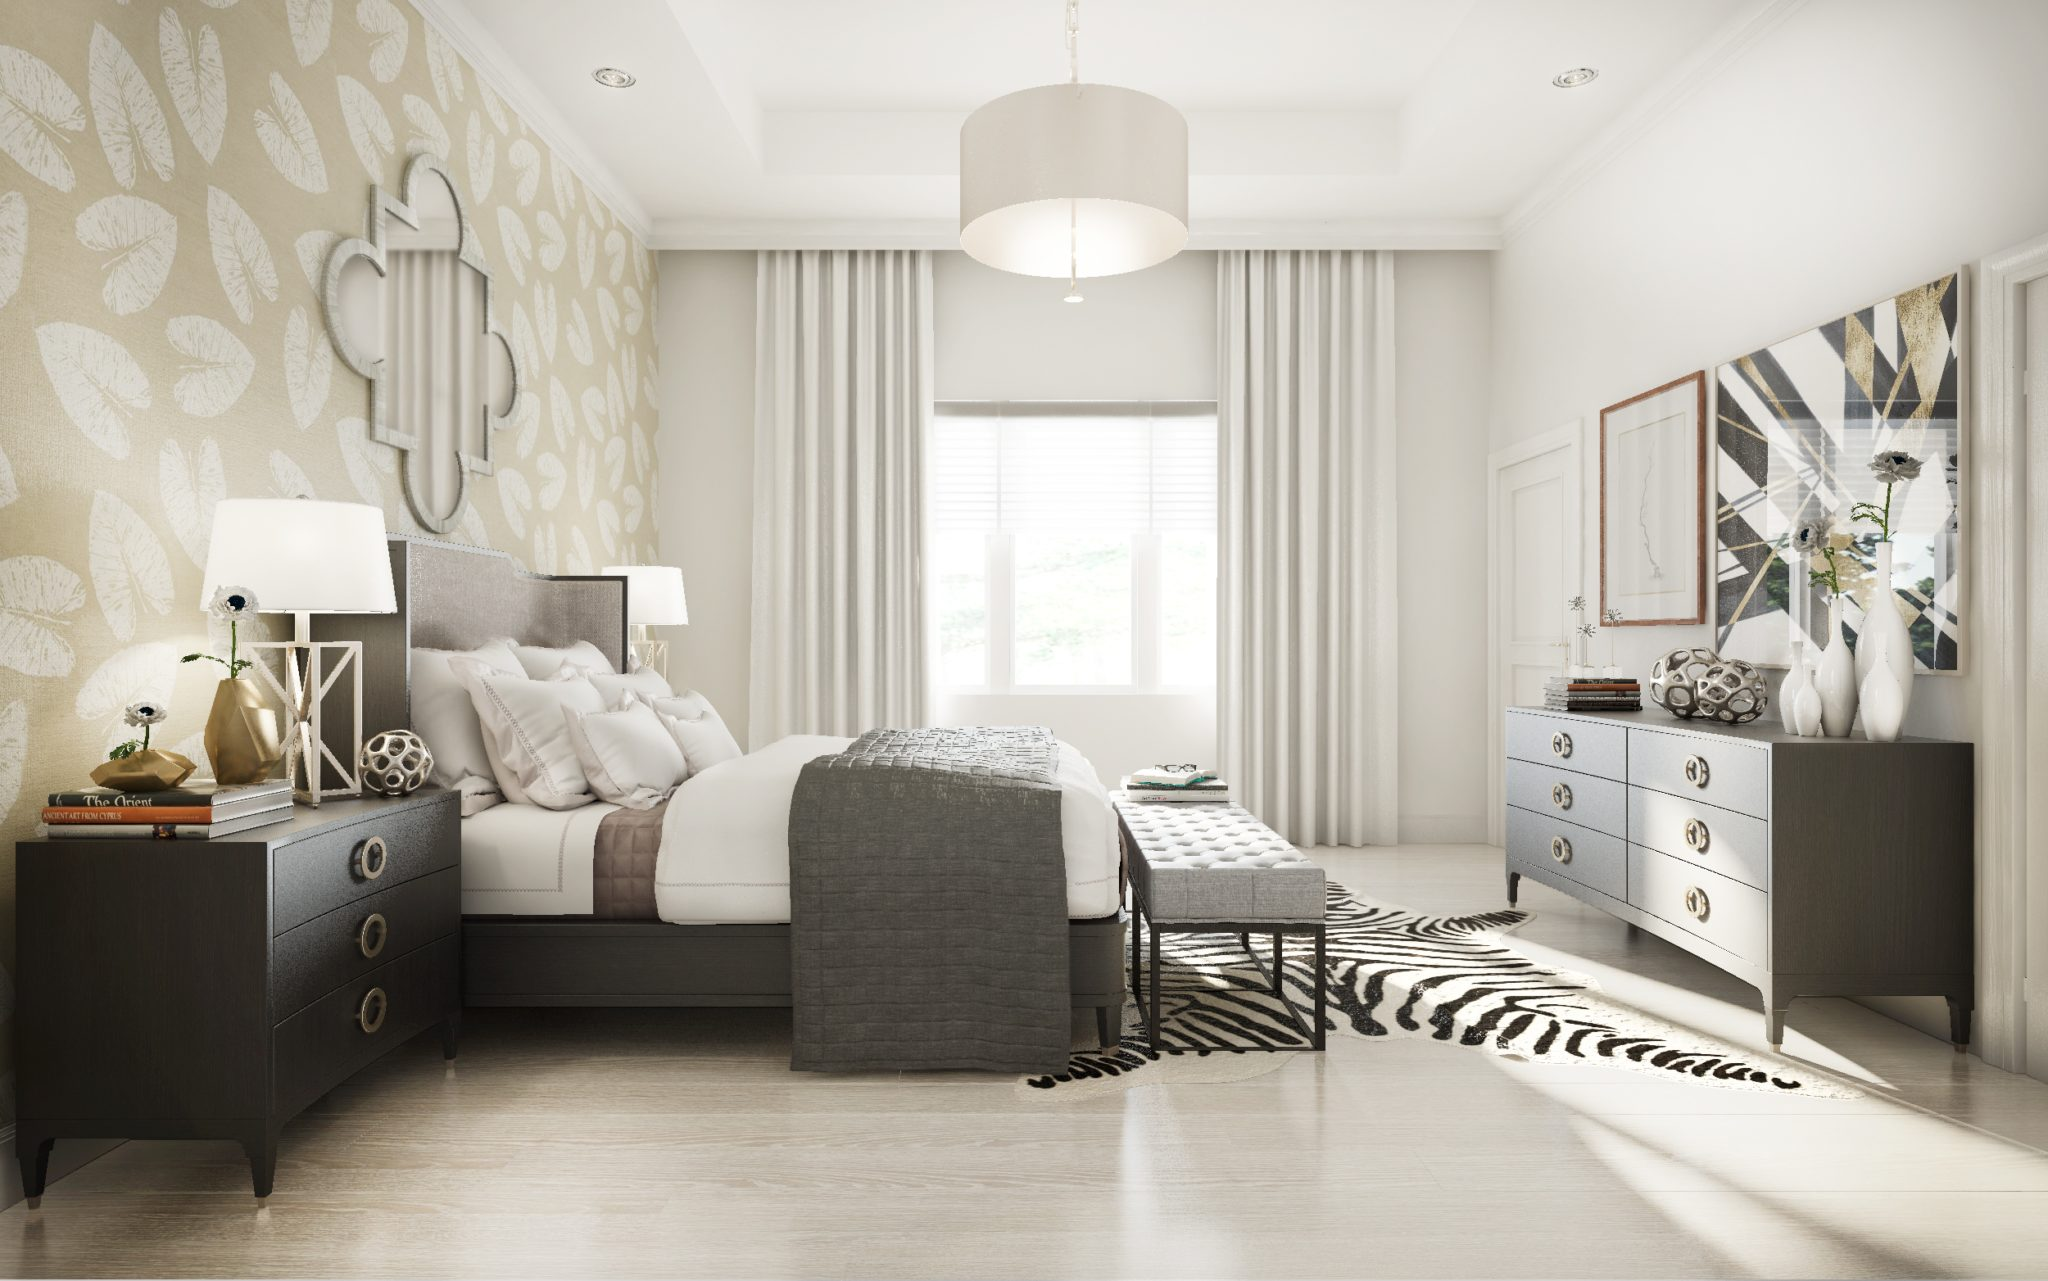 Naples, Florida Residence | Bedroom by Kathy Kuo Designs